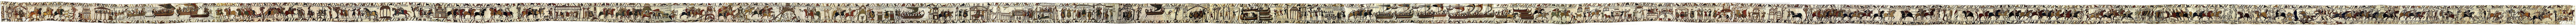 The entire Bayeux Tapestry